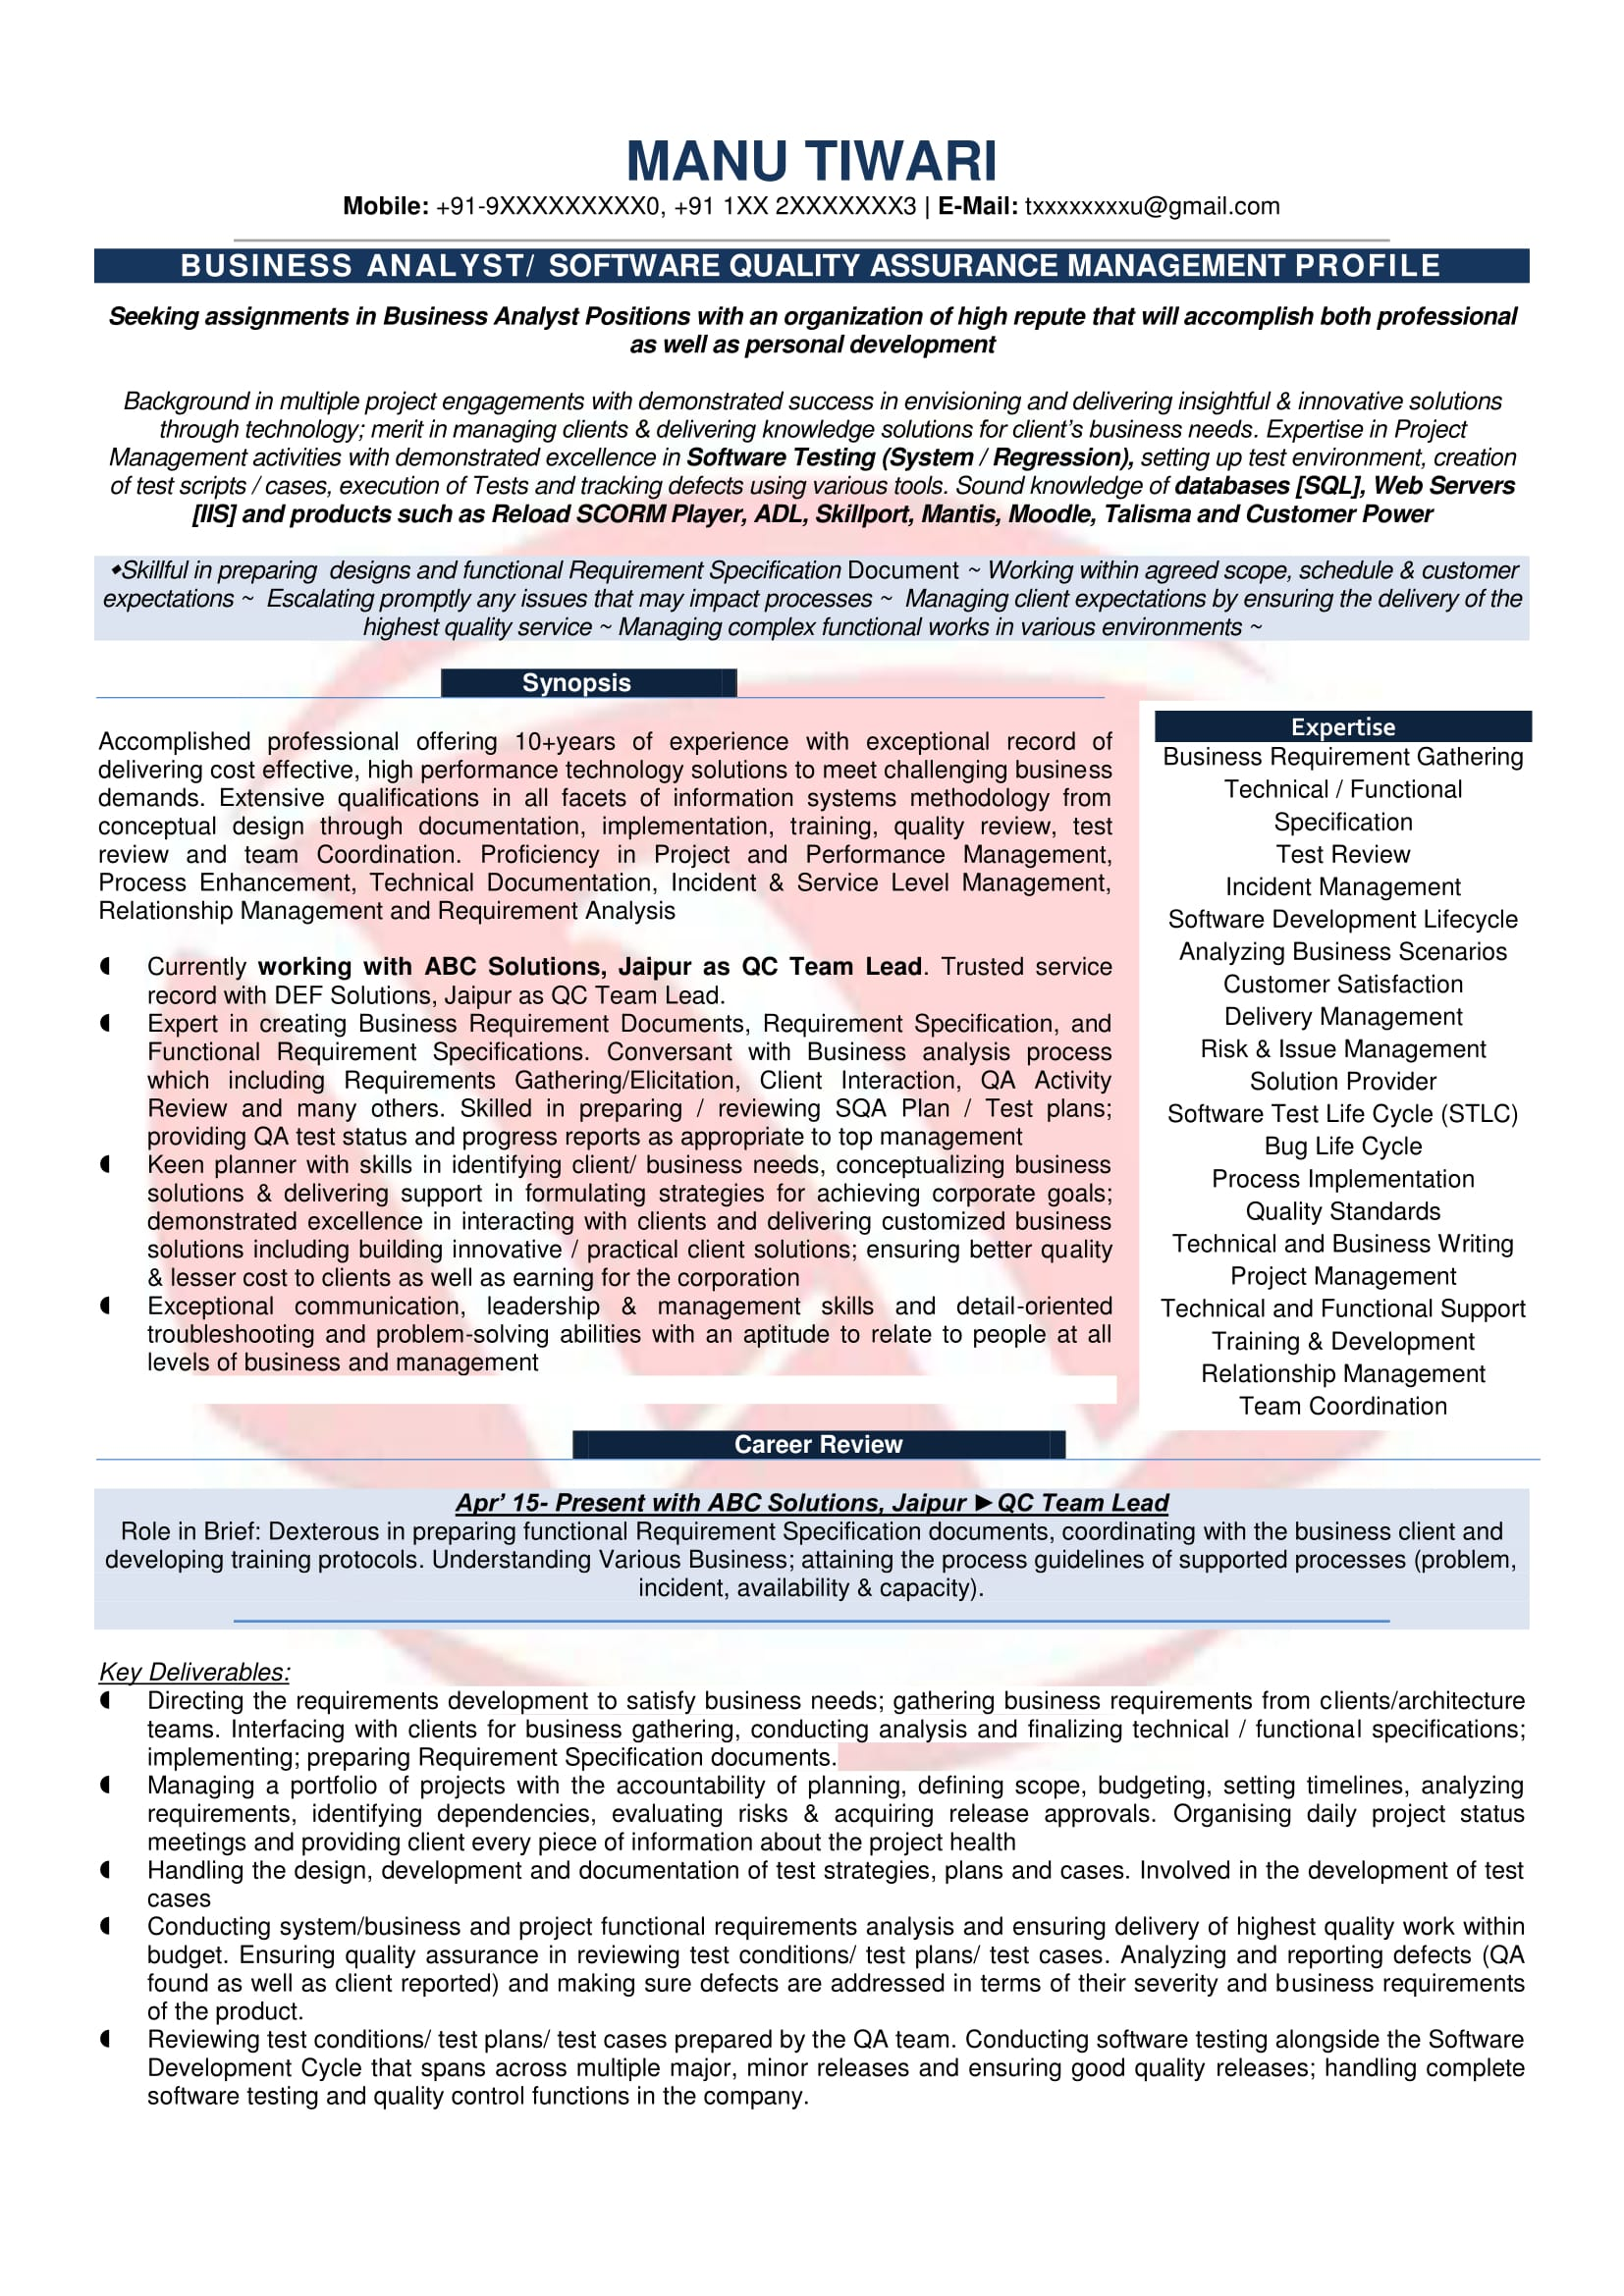 business analyst sample resumes resume format templates dental hygiene accounts Resume Business Analyst Resume Download